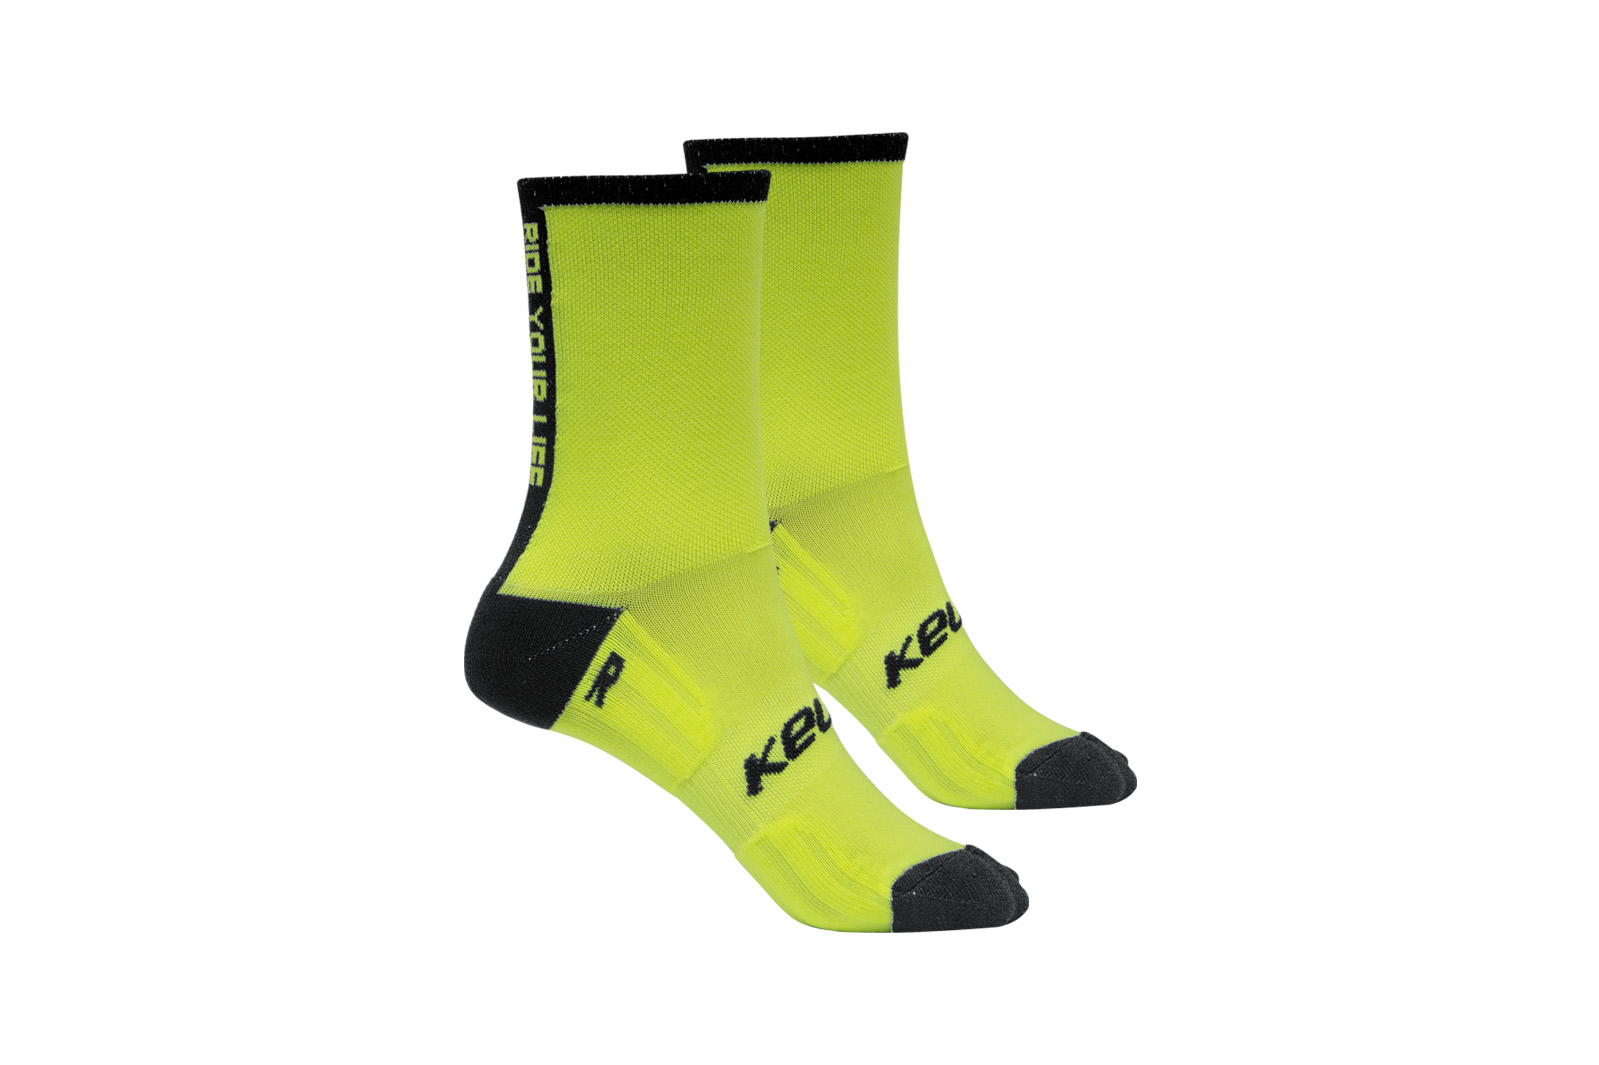 Socken KELLYS PRO Race lime 38-42 (016) - bagier Sports GmbH